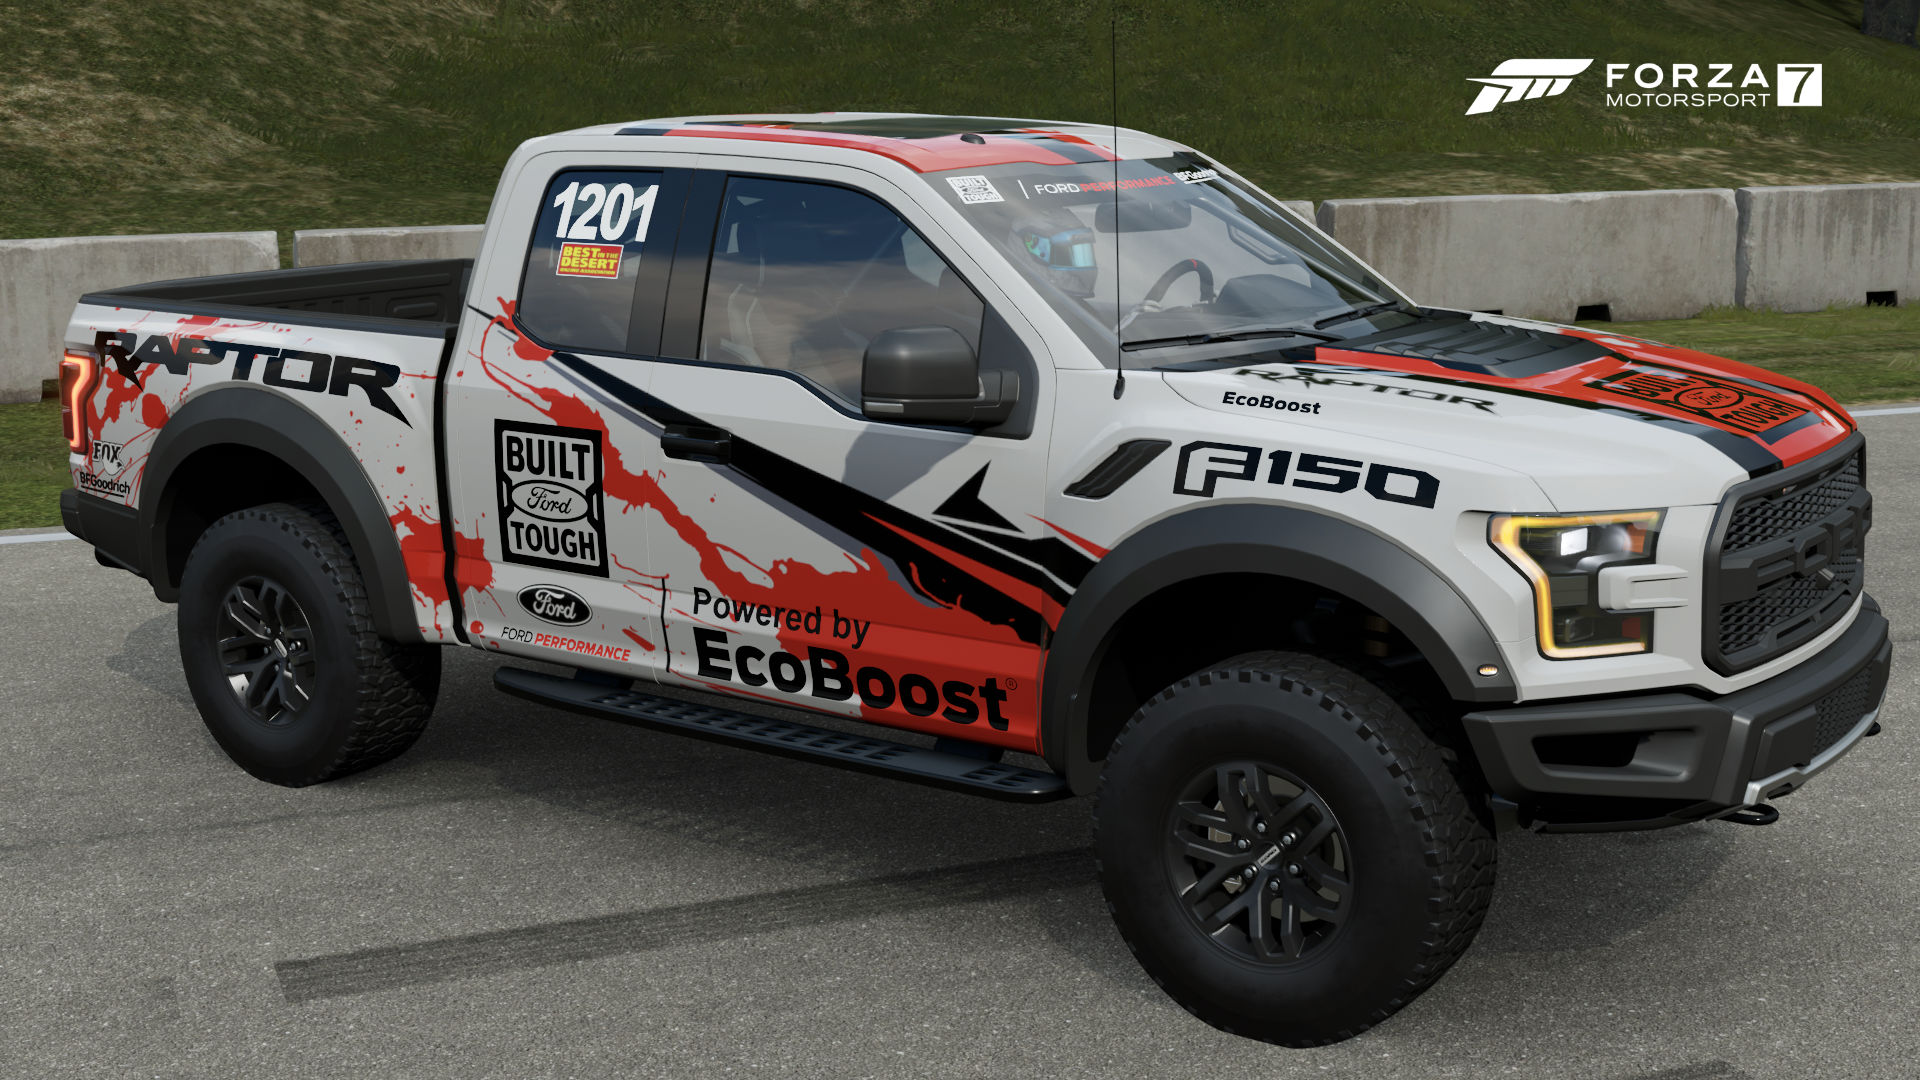 ford f 150 raptor race truck forza motorsport wiki. Black Bedroom Furniture Sets. Home Design Ideas